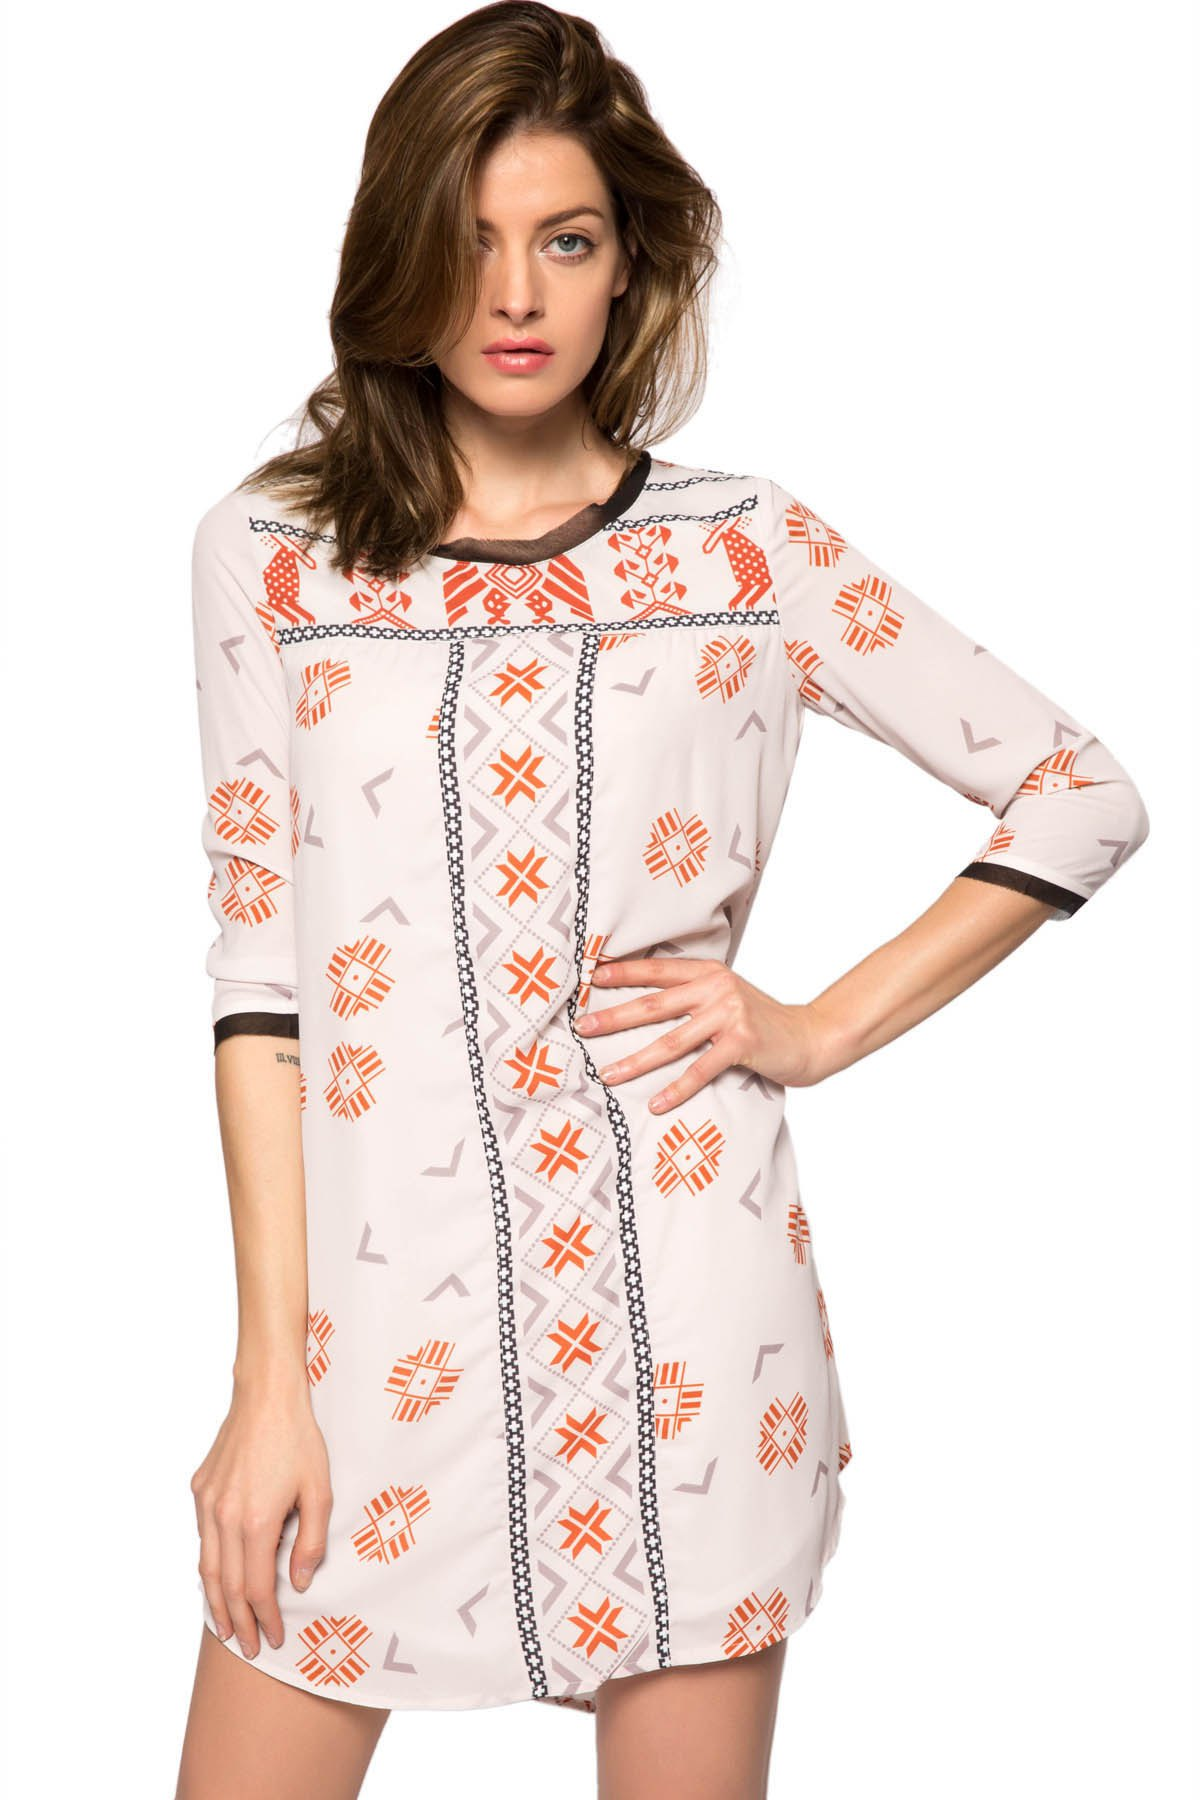 Print 3/4 Sleeve Lace-Up Dress - OFF WHITE XS